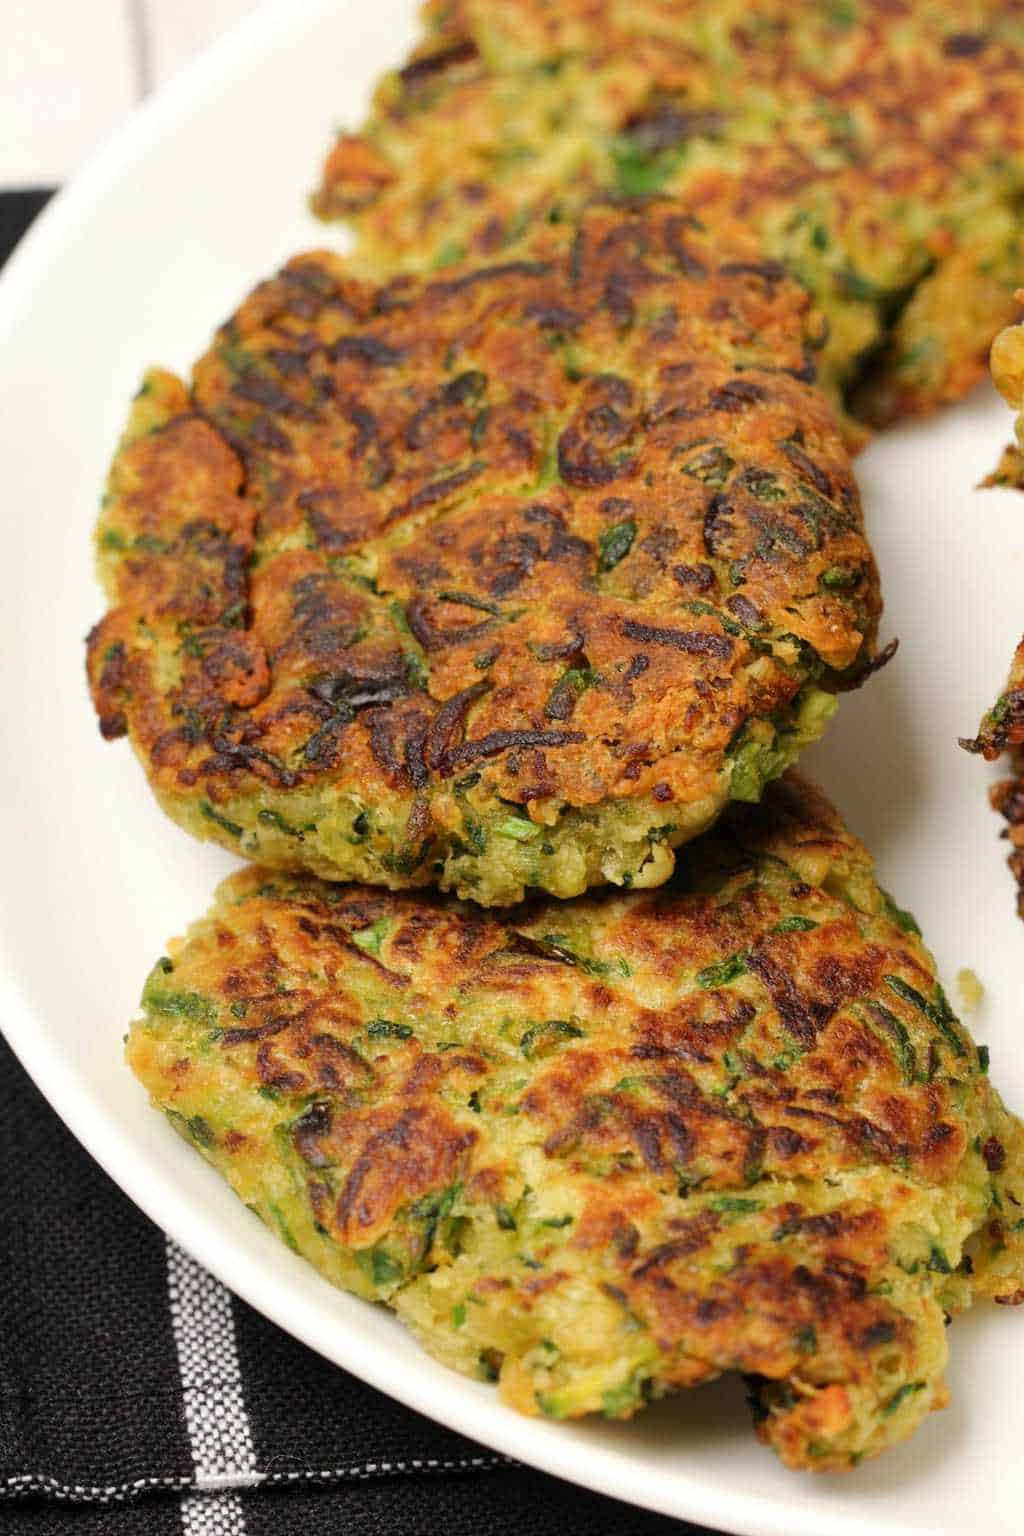 Vegan zucchini fritters on a white plate.